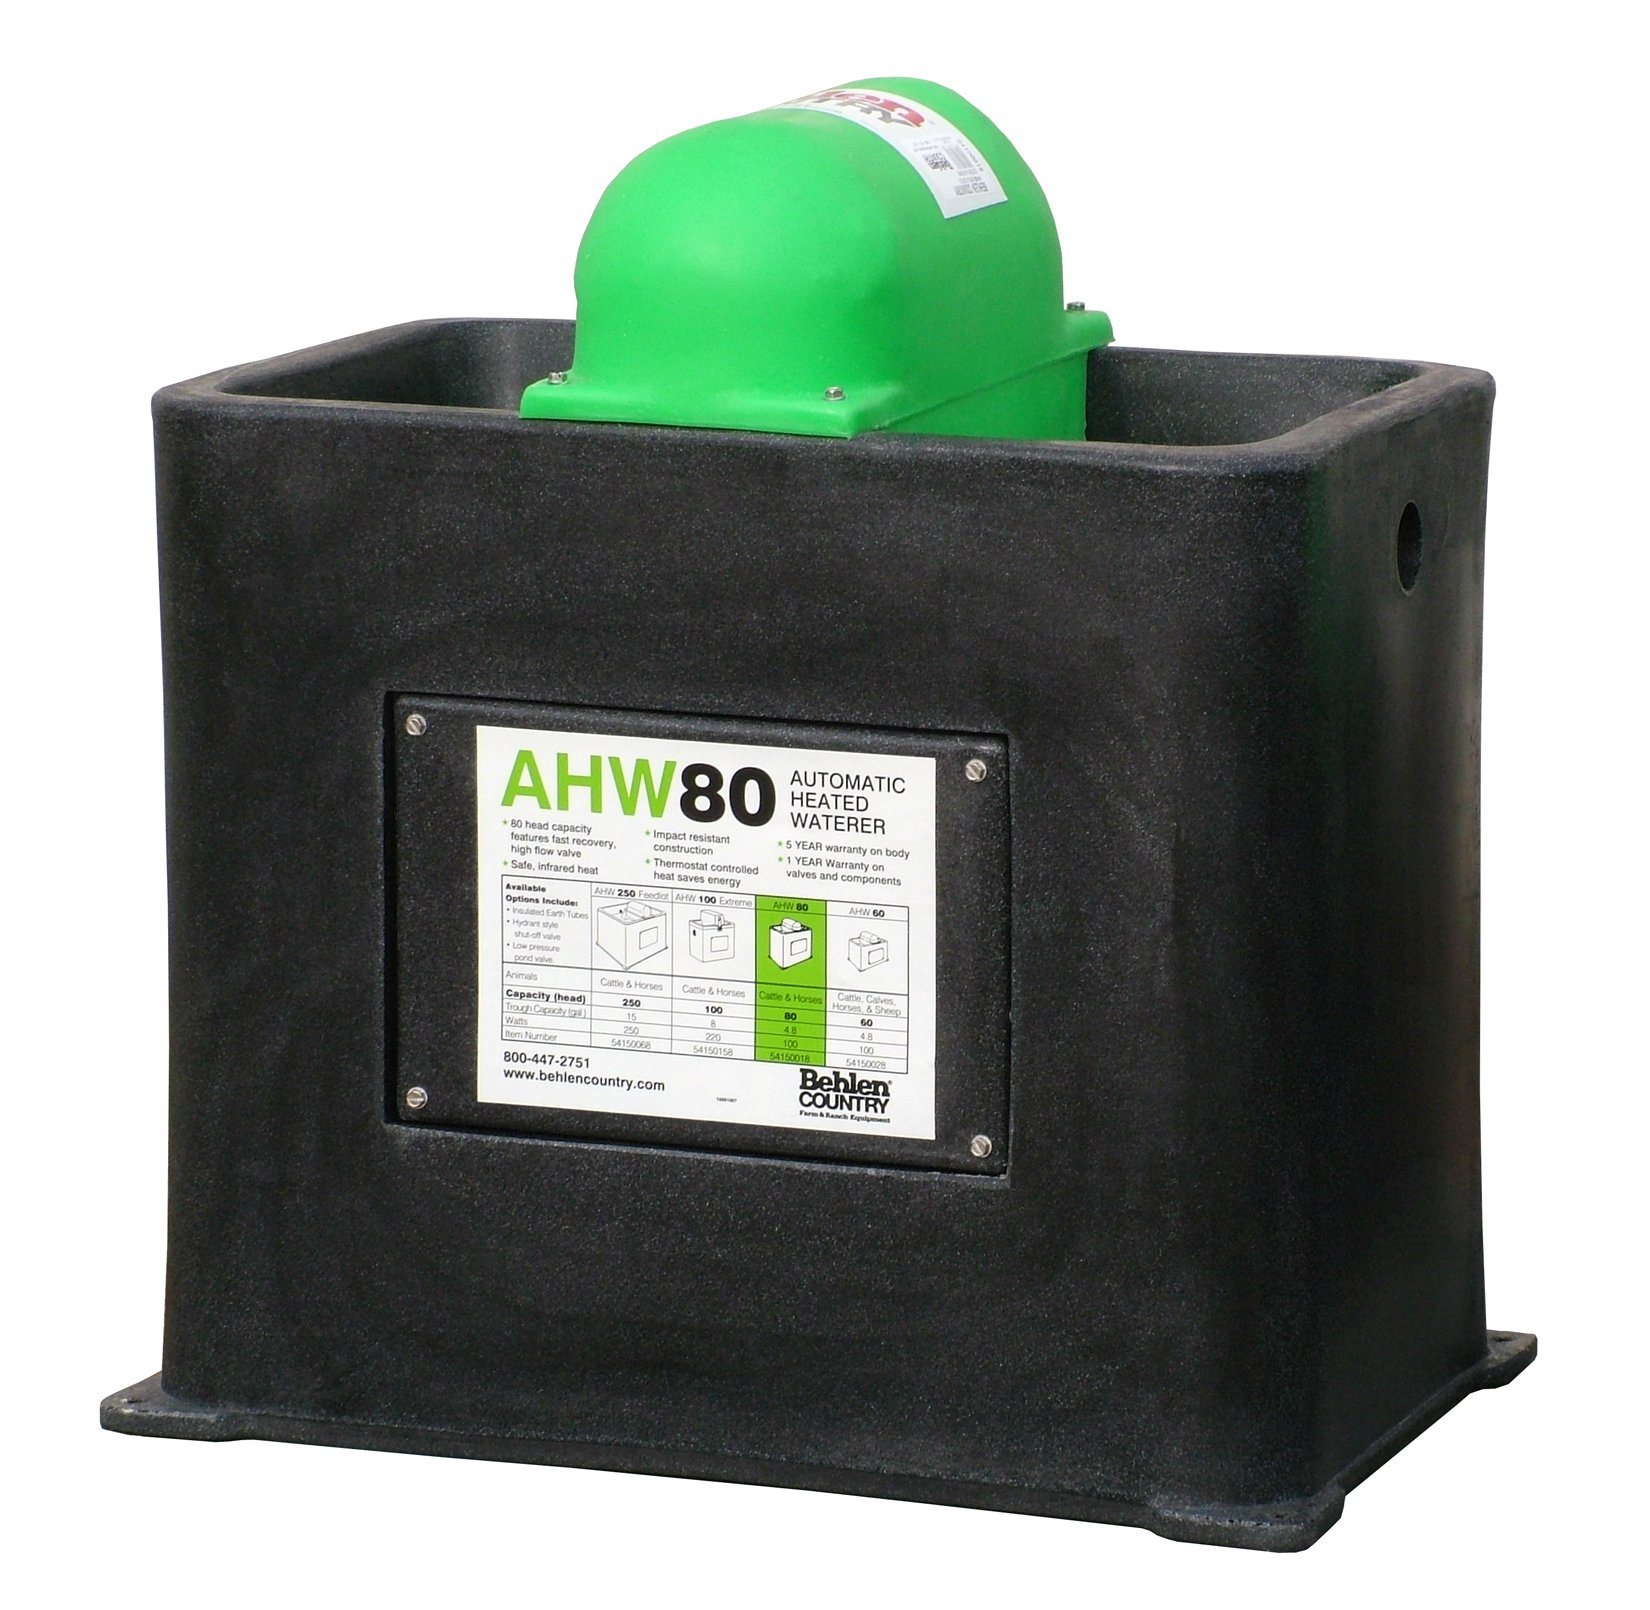 Behlen Country AHW80 Insulated Cattle/Horse Waterer with Heat by Behlen Country (Image #1)